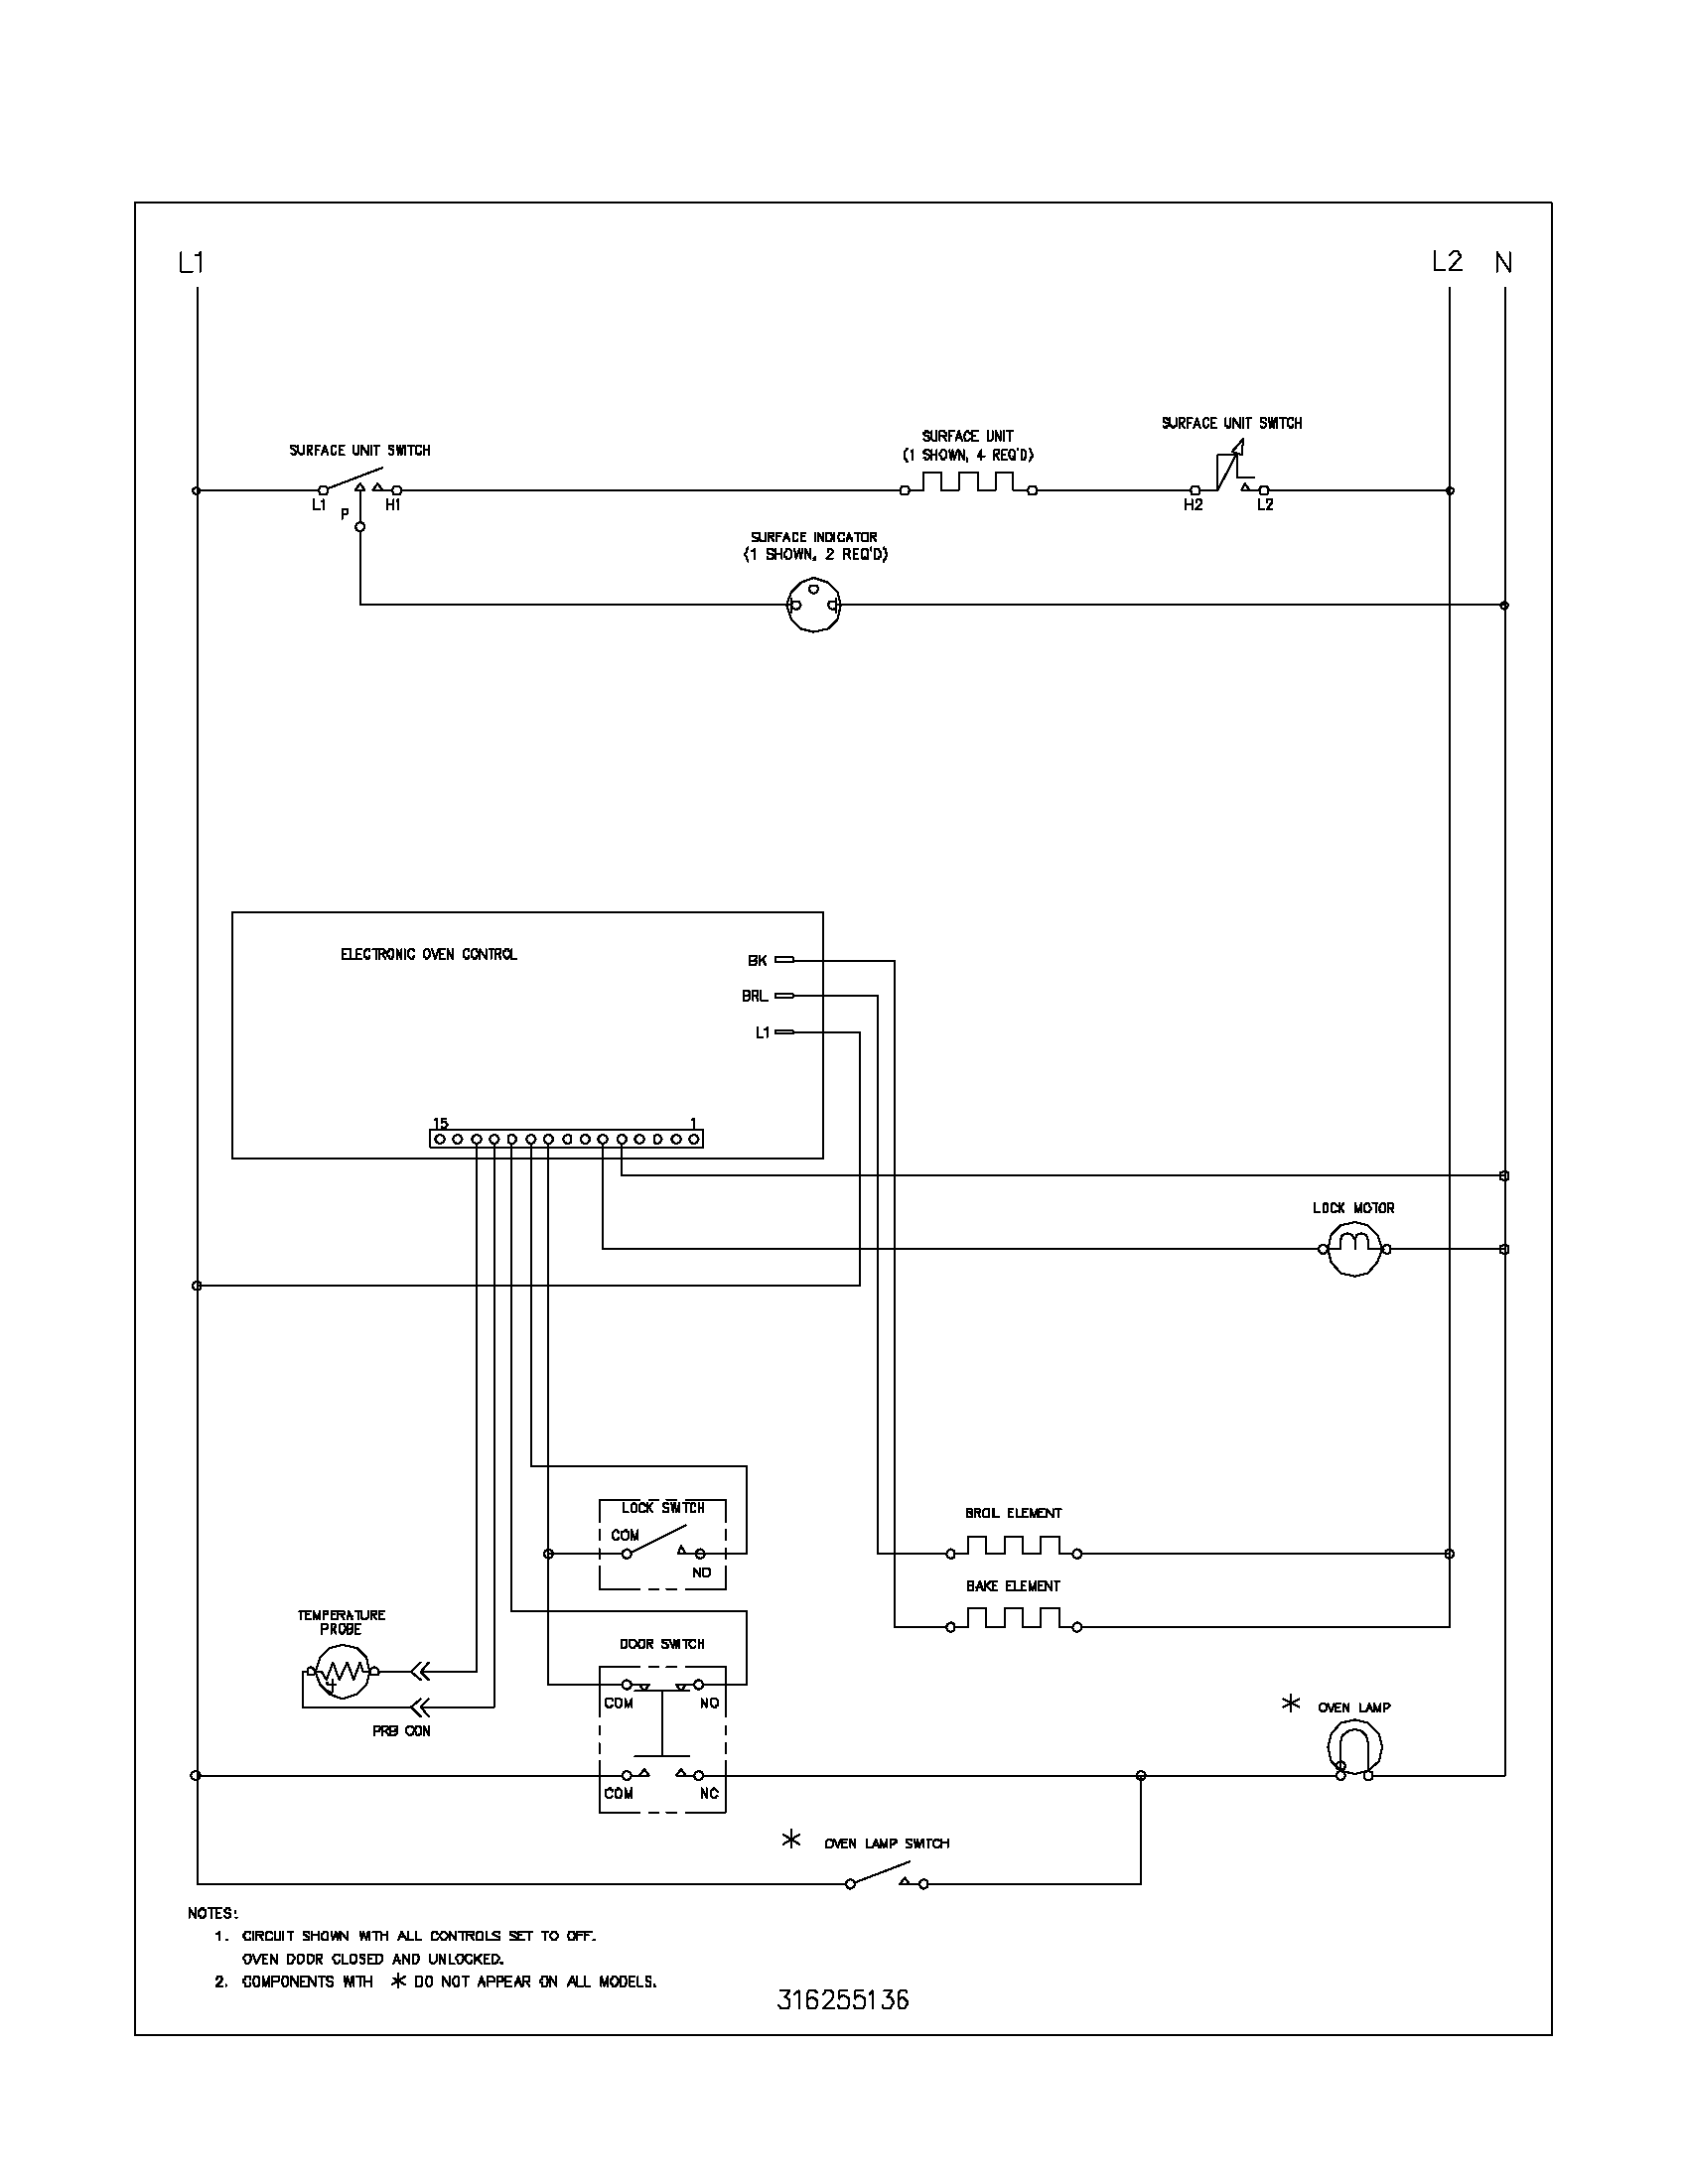 hight resolution of thermostat wiring diagram kelvinator model kef355asc free standing electric genuine parts rh buck stove